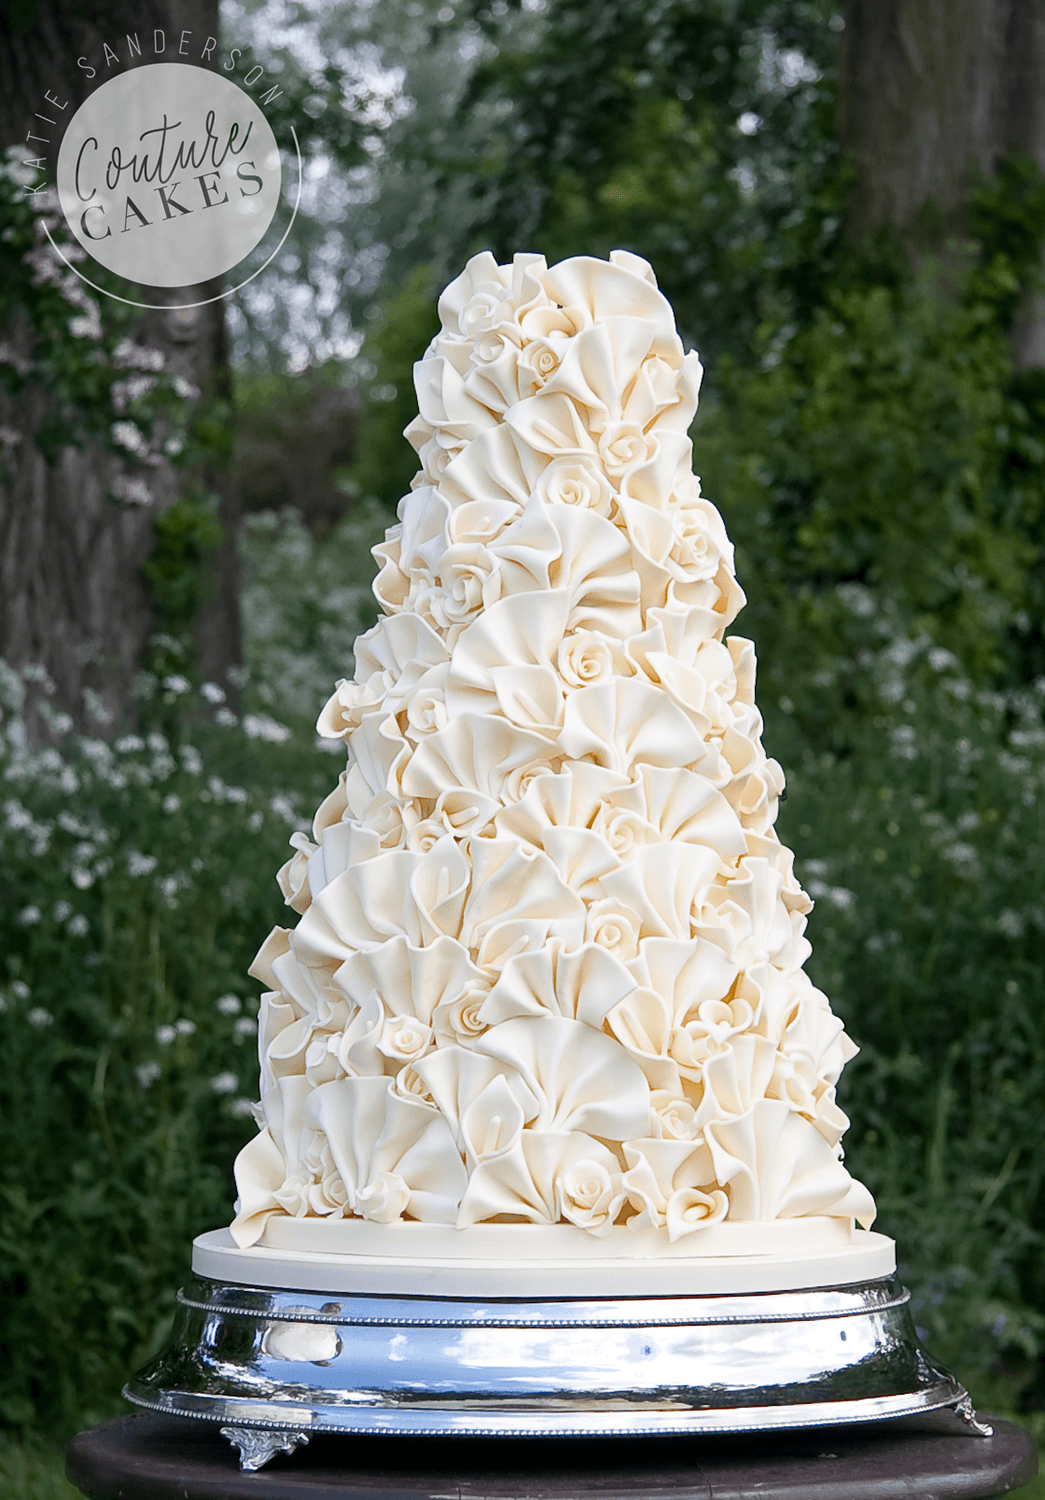 Tiered Wedding Cakes - Couture Cakes